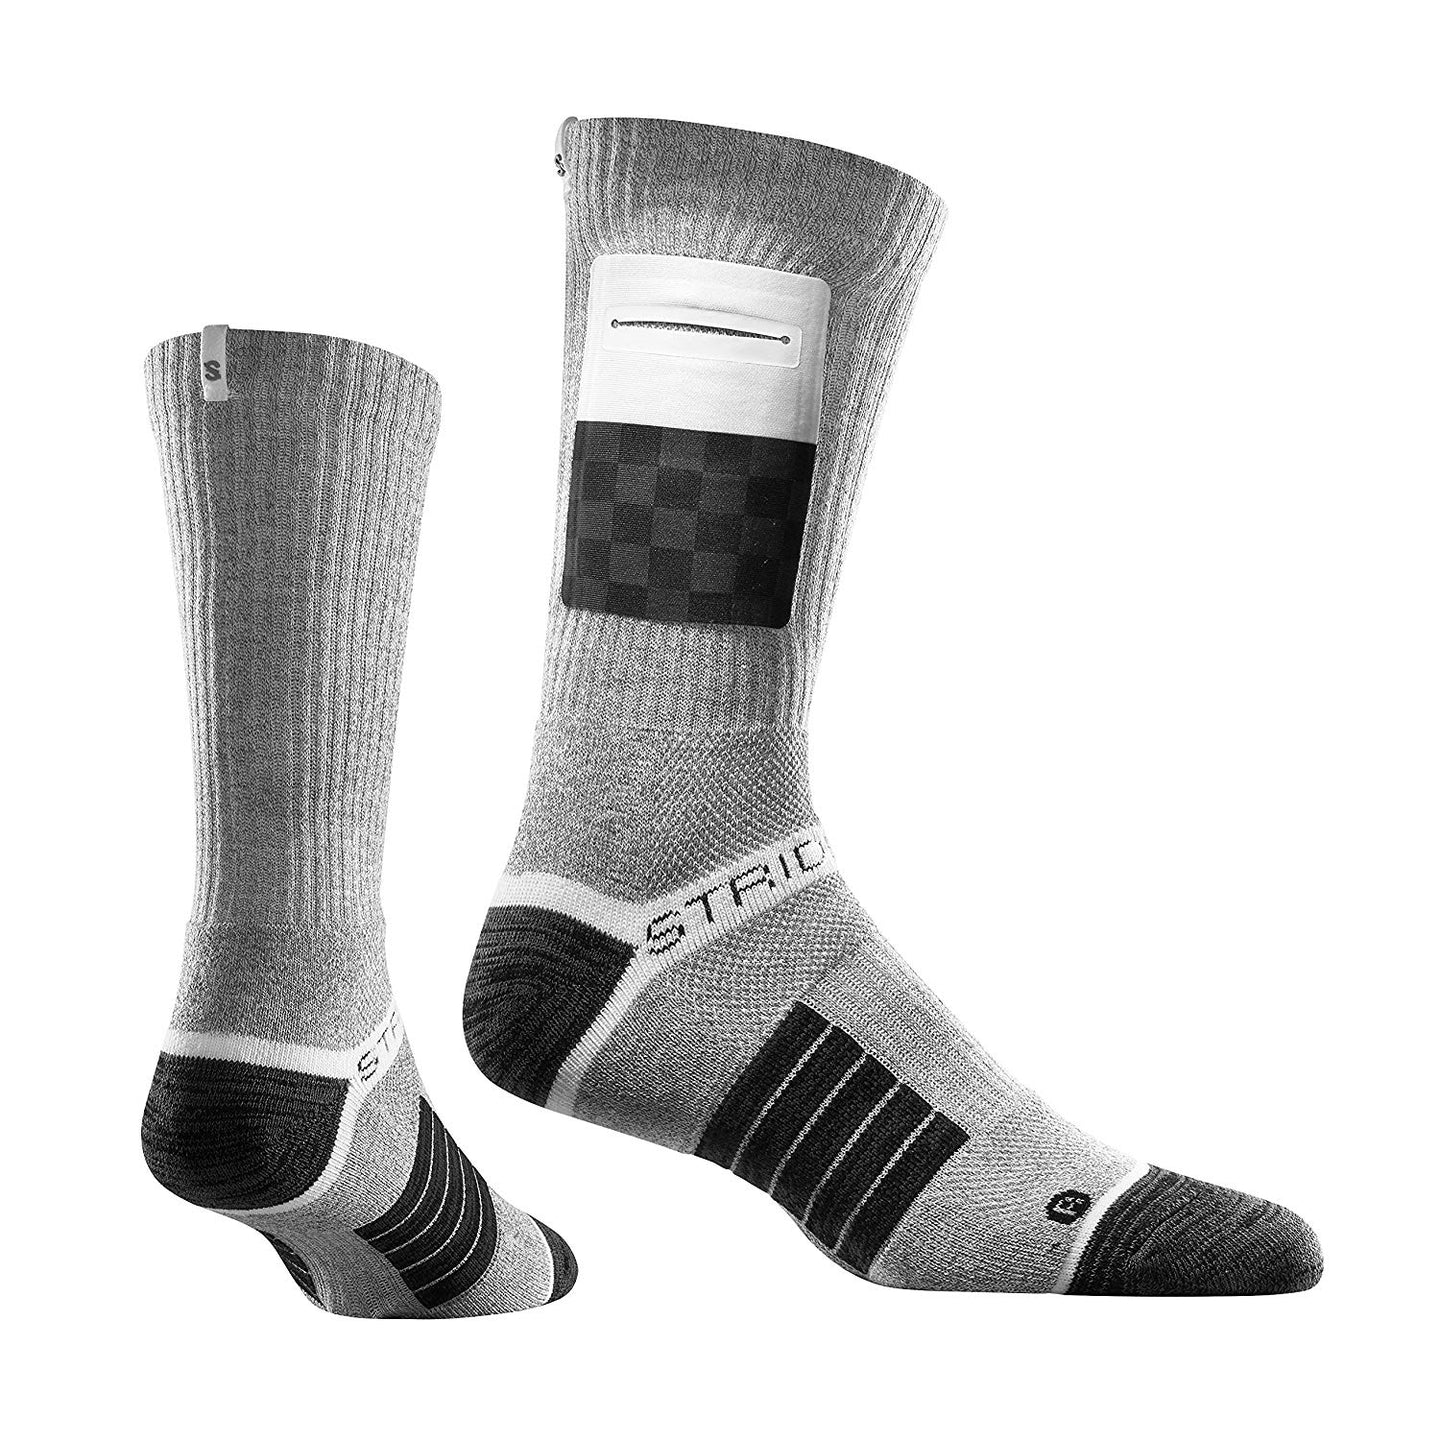 The Grid Utility Sock